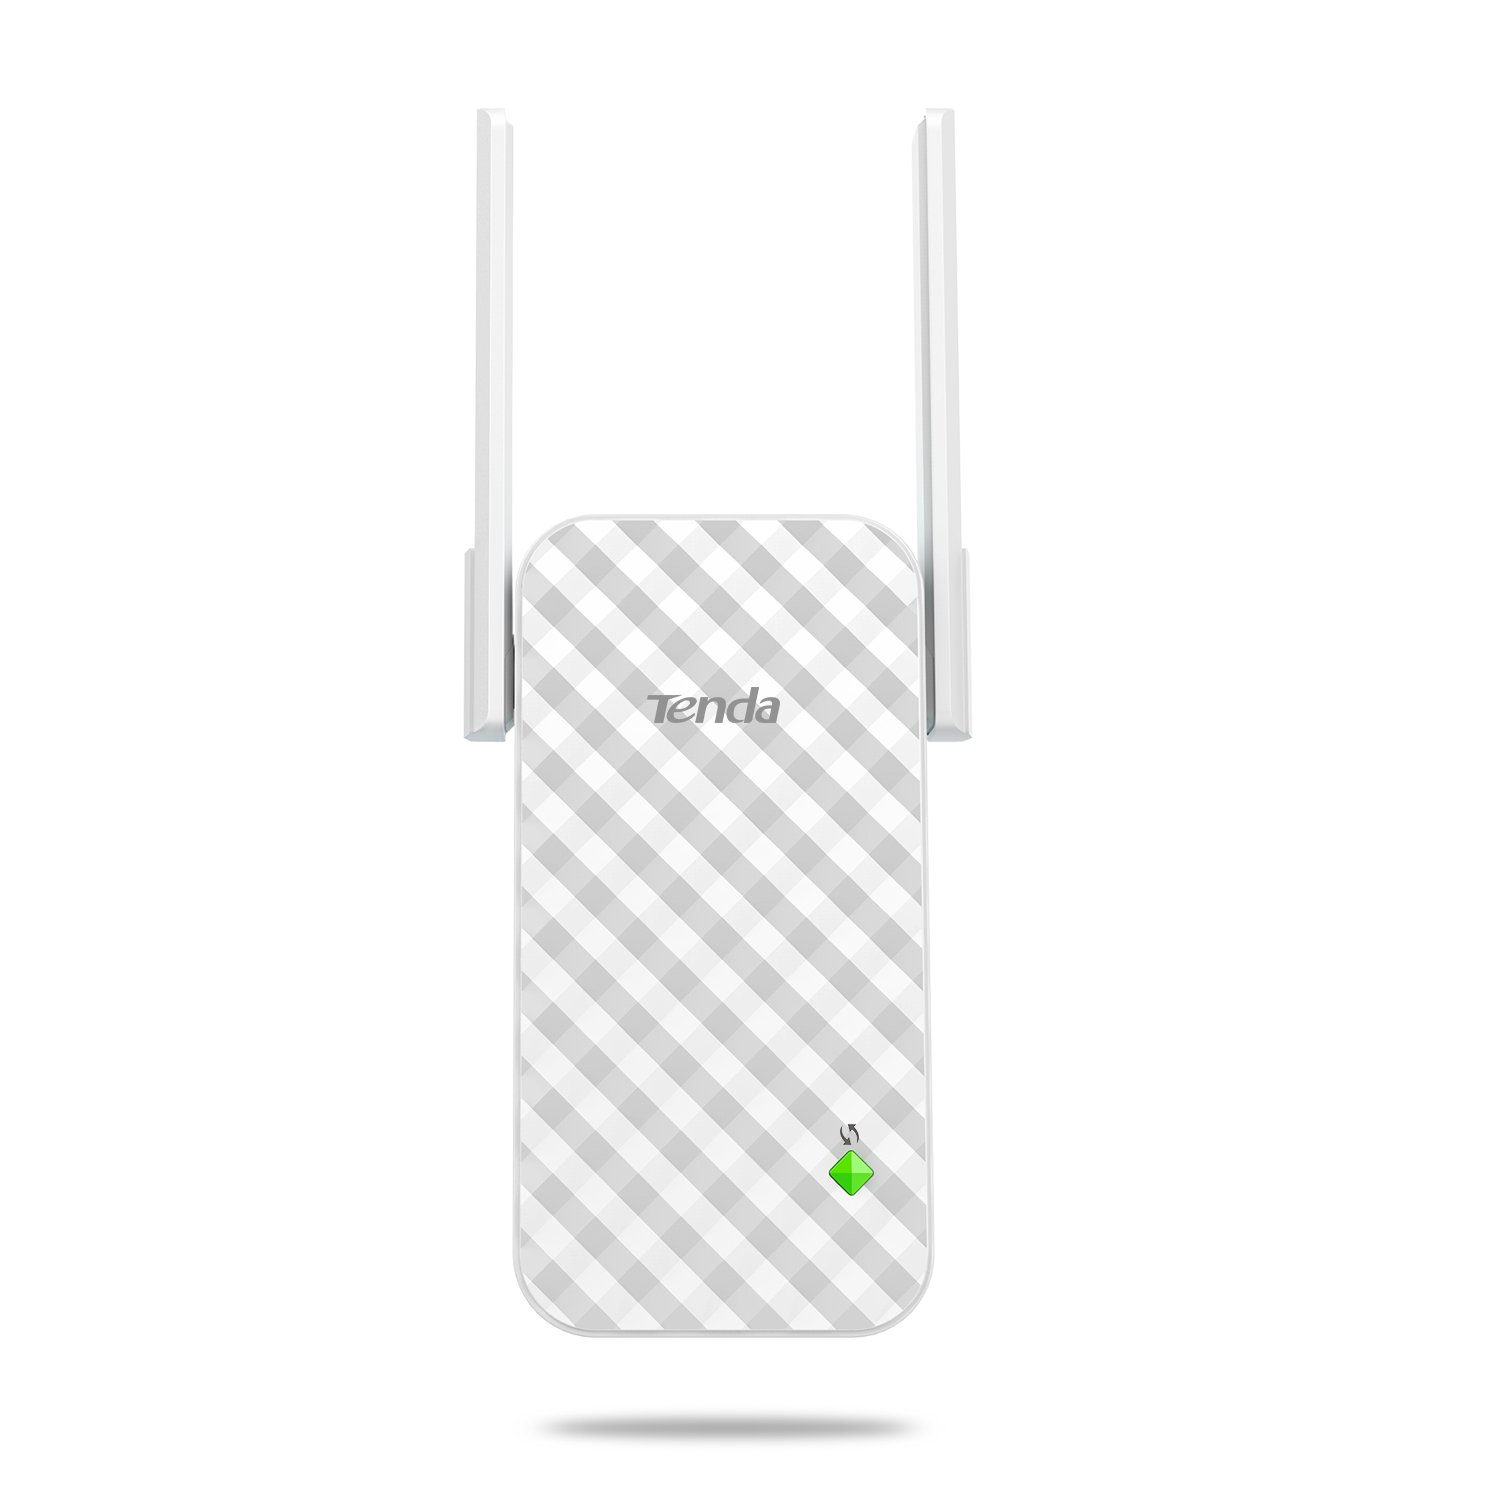 Tenda A9 Wireless N300 Universal Range Extender with 2 External Antennas, One Button Extension, Smart Signal LED and Universal Compatibility